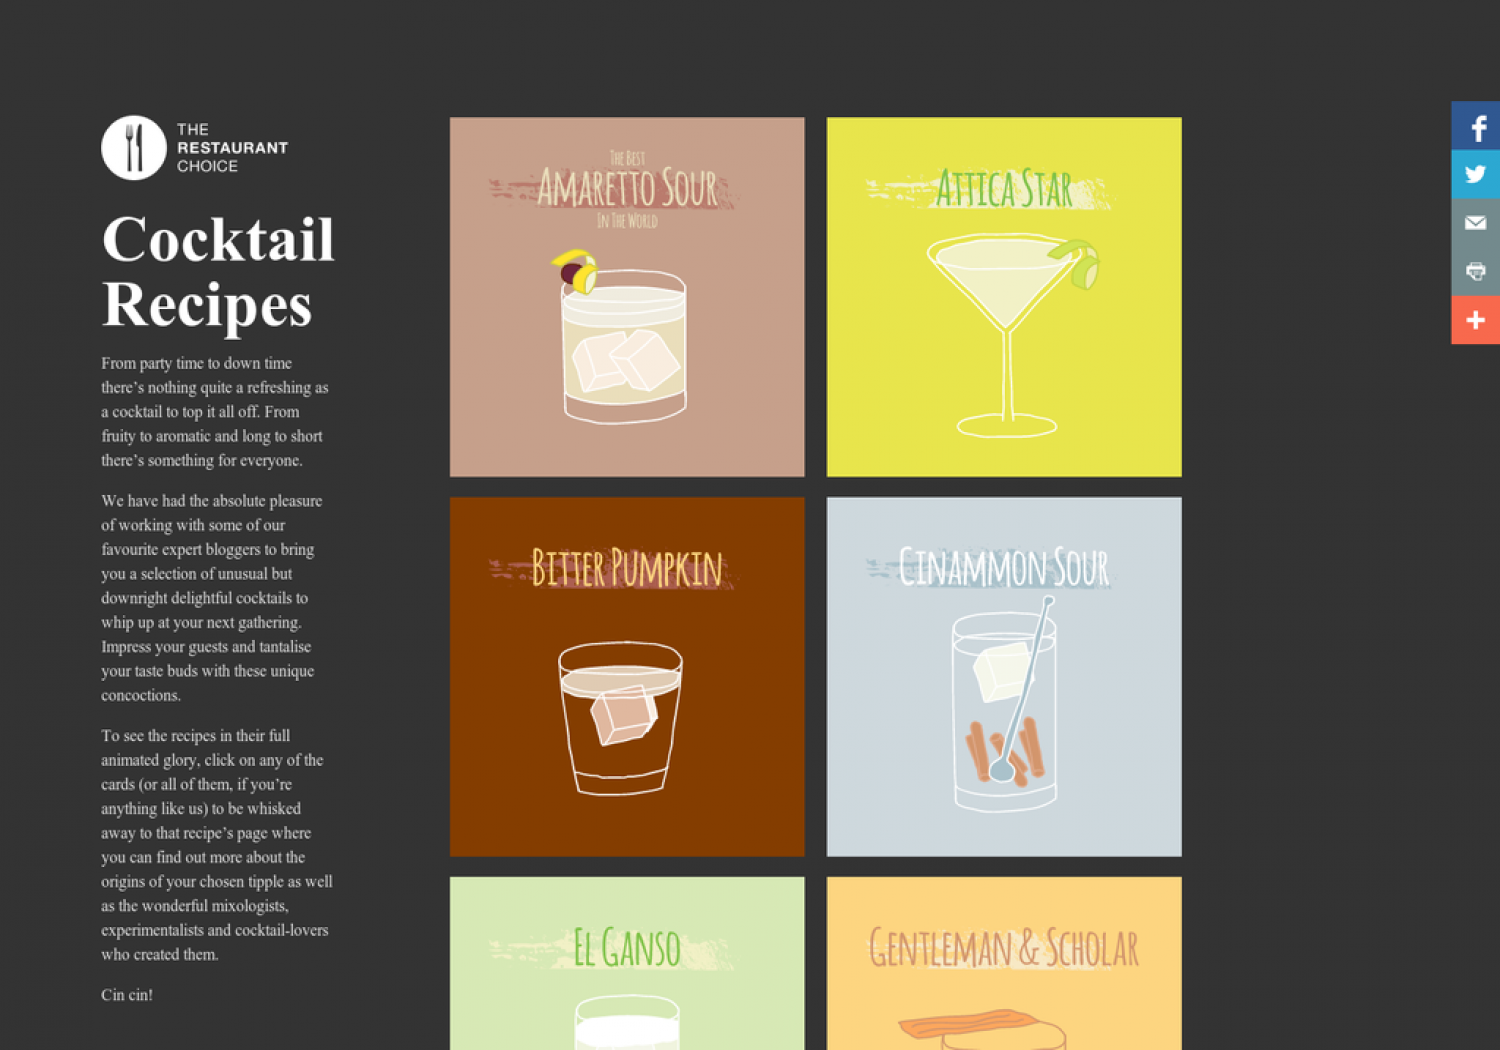 Cocktail Recipes Infographic